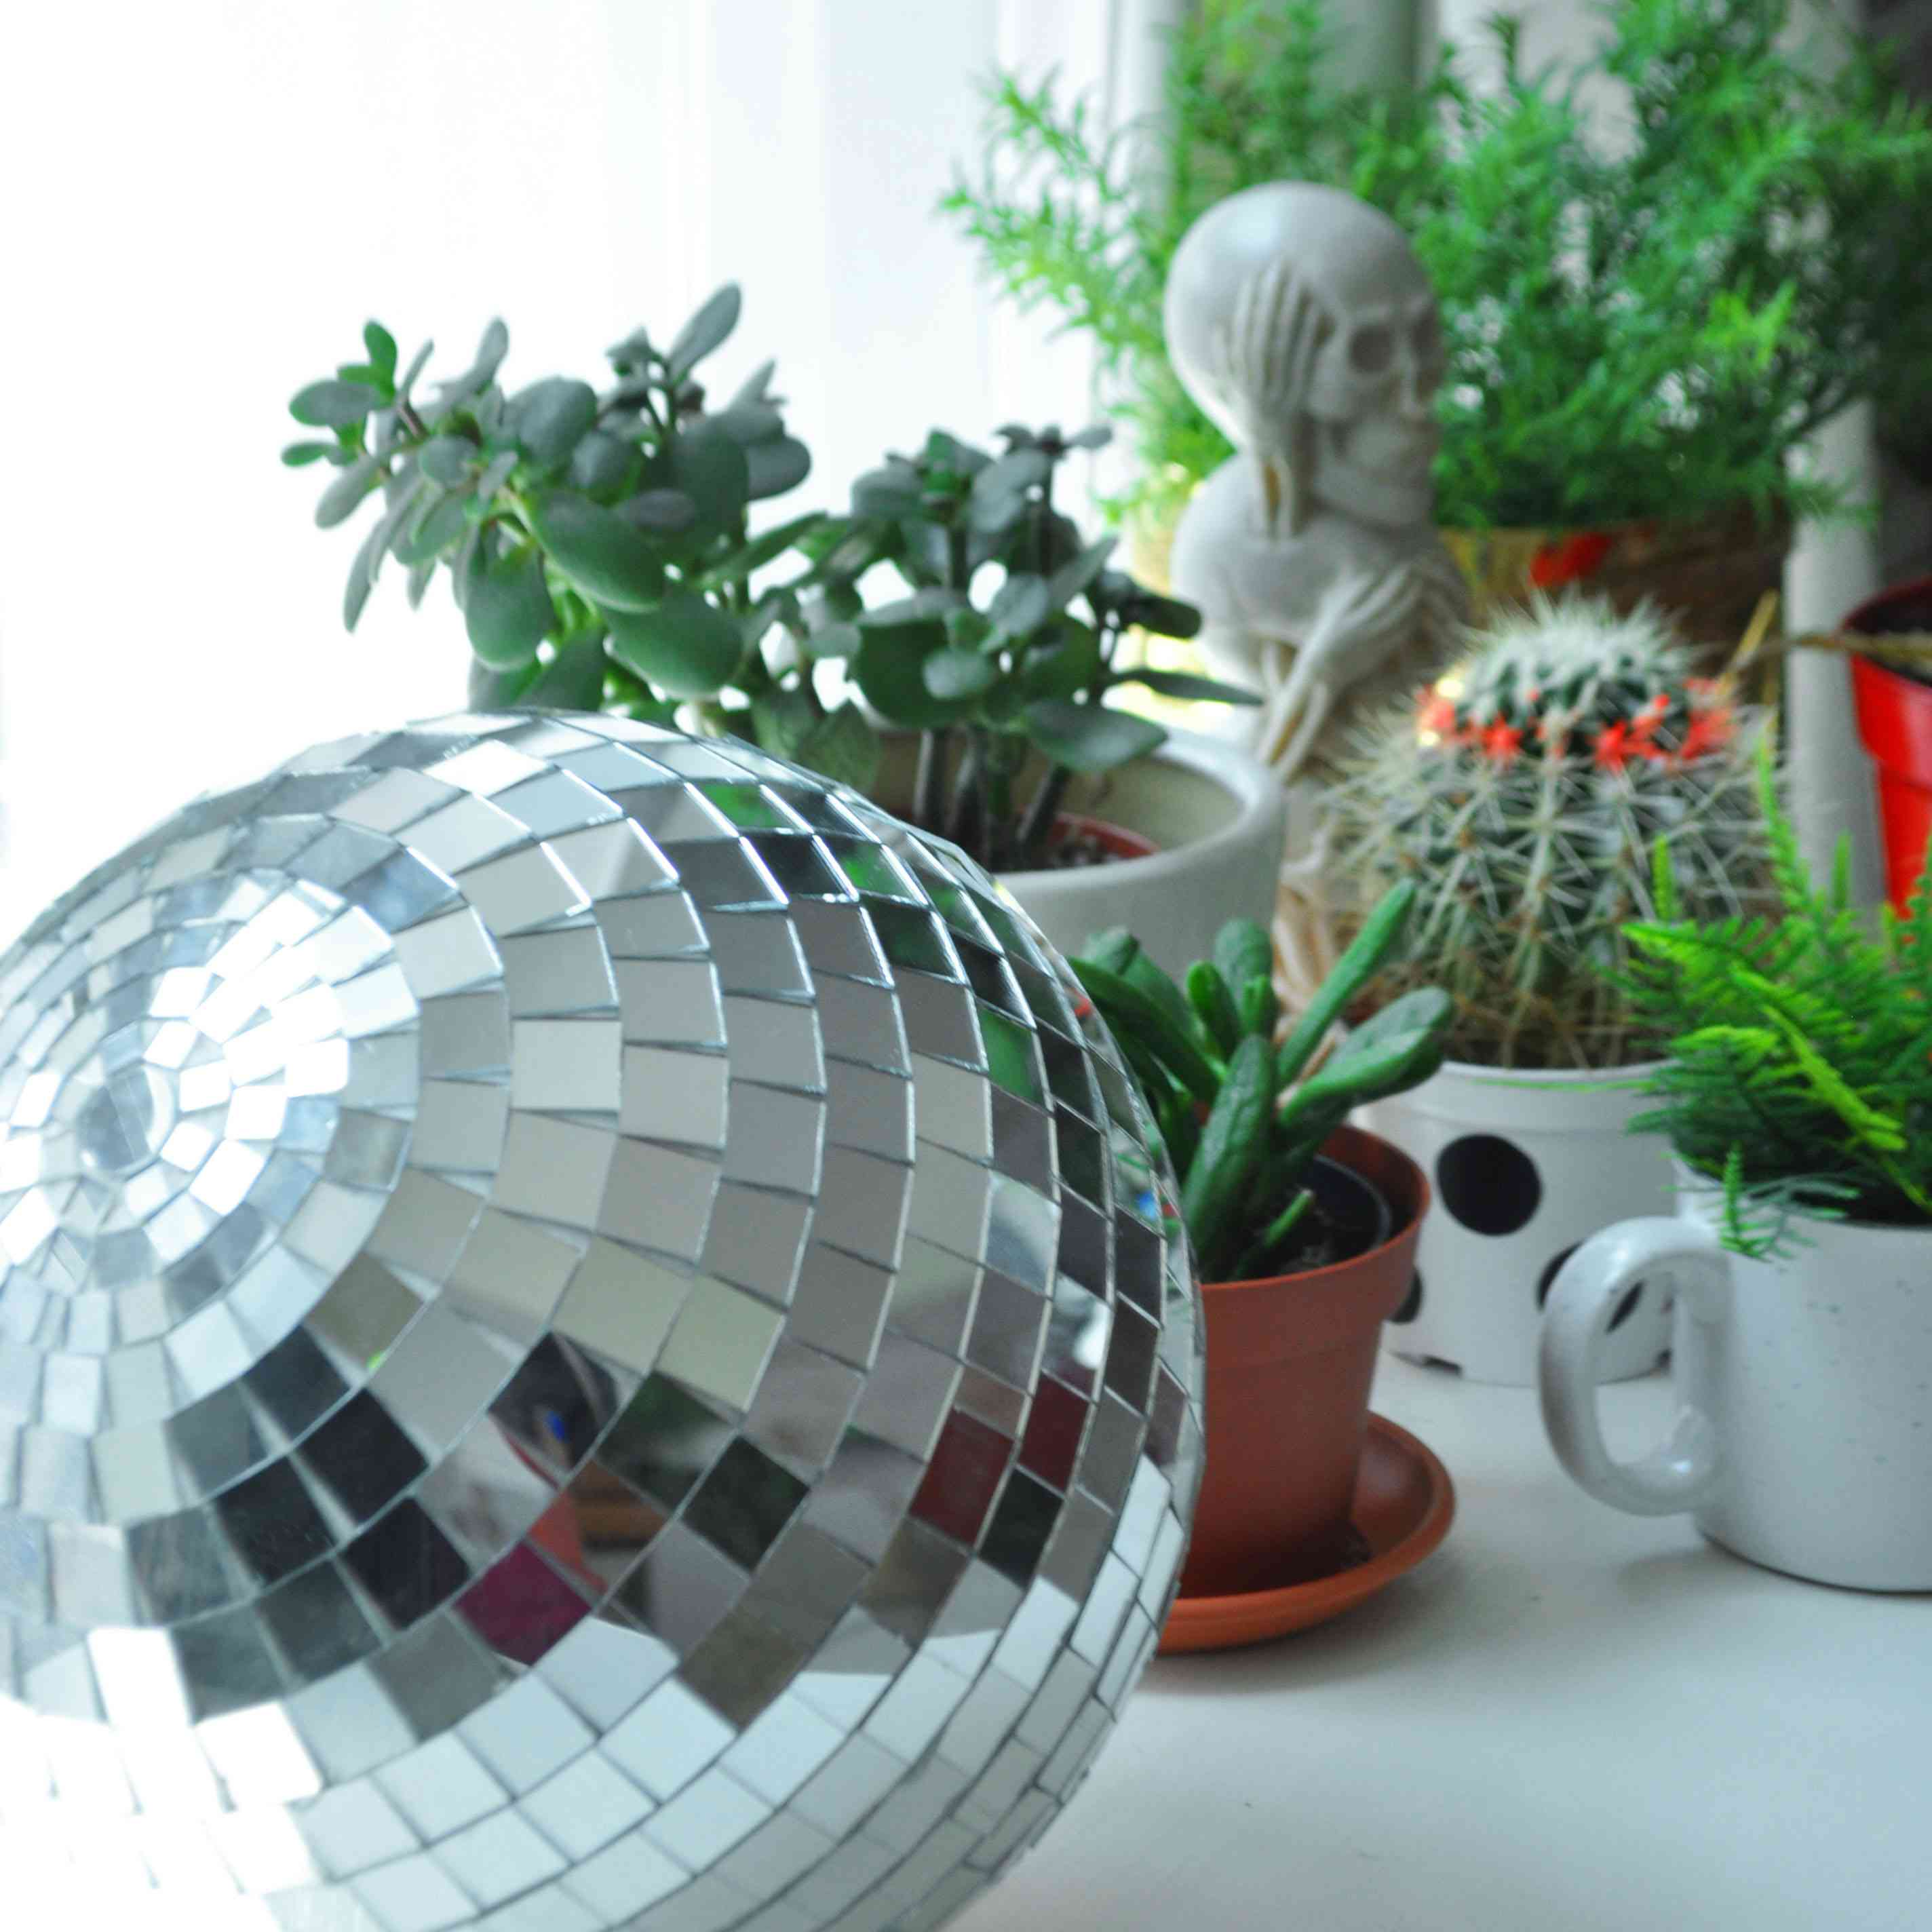 disco ball with potted plants